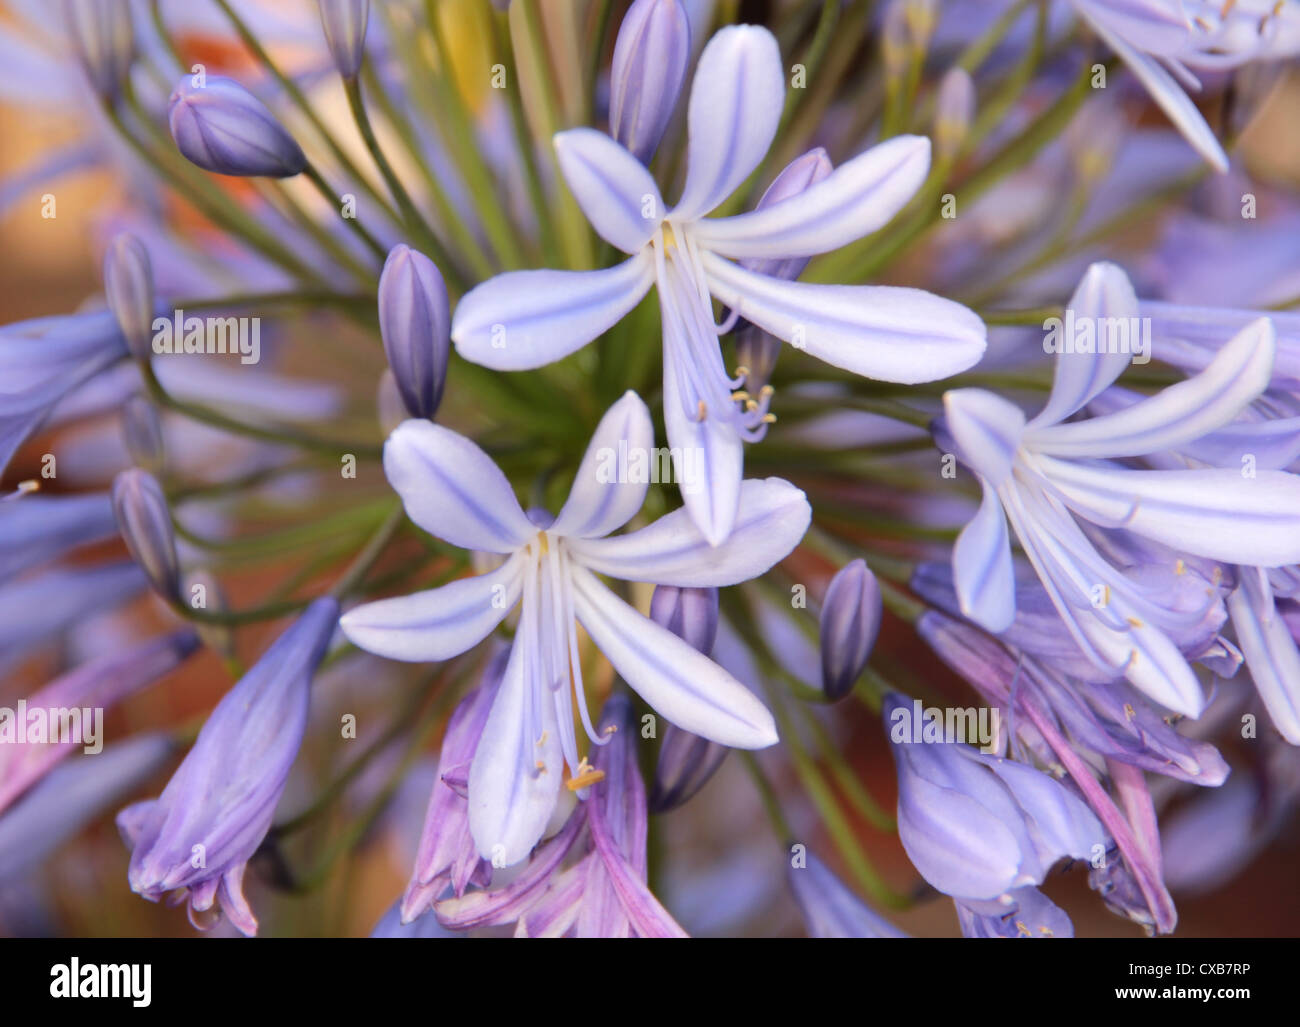 detail of a flower named Lily of the Nile - Stock Image